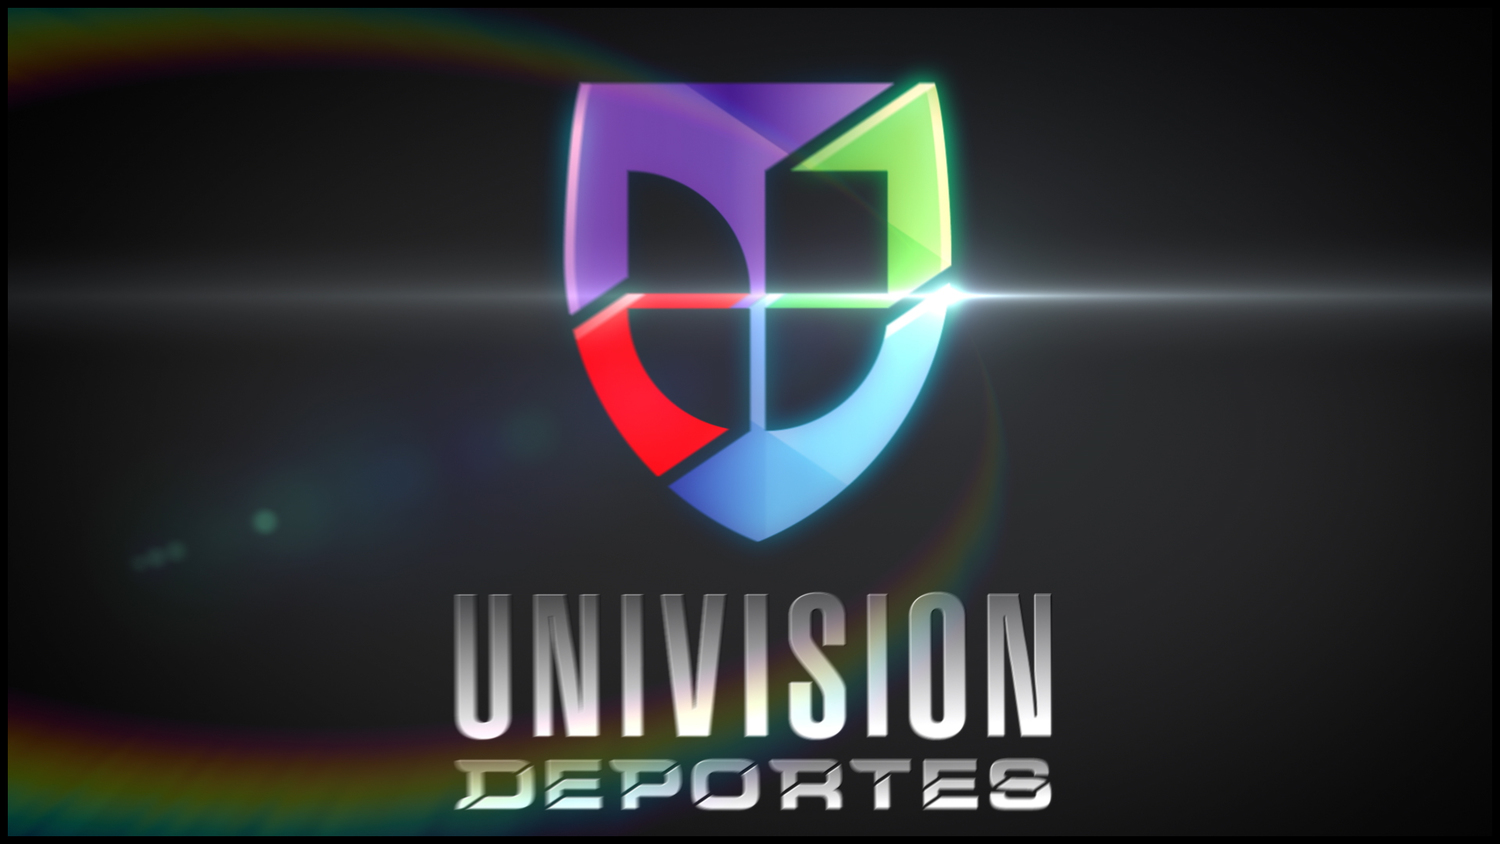 Univision Deportes • 24/7 Live Stream • USA/MEX IP LIVE (Enable Flash)